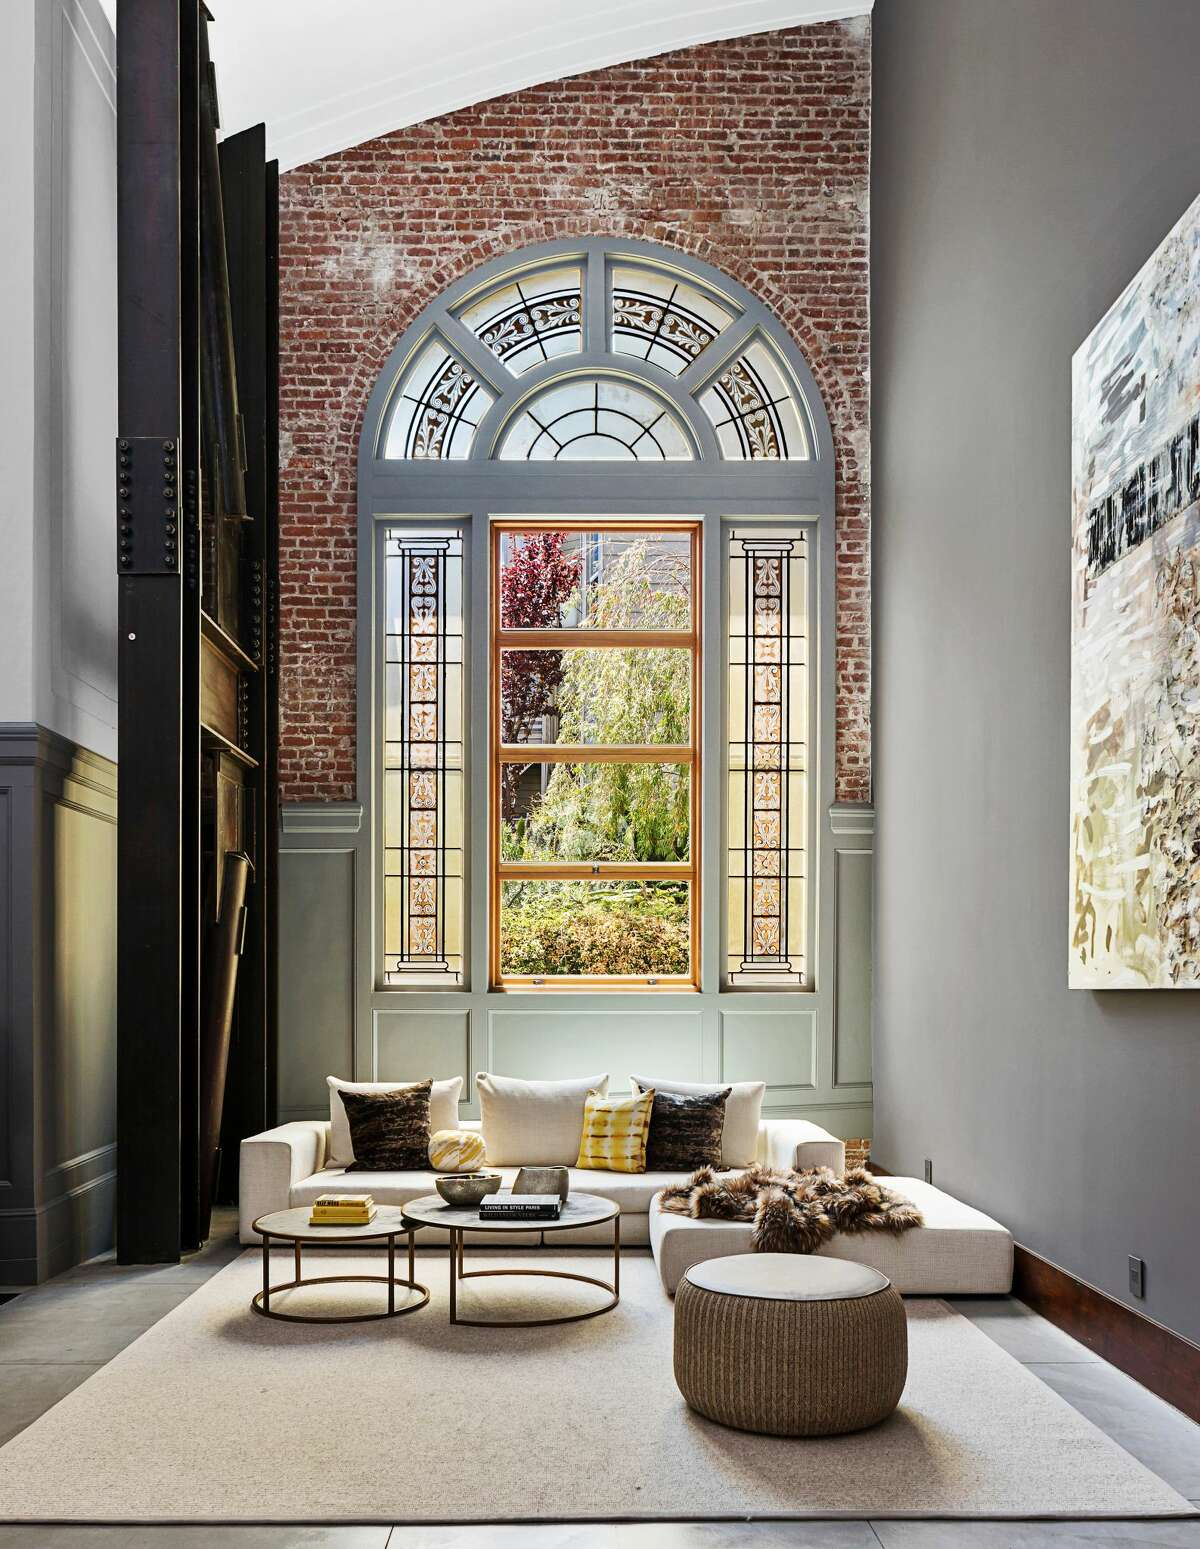 The massive ceilings showcase the tall brick walls embedded with art glass windows.